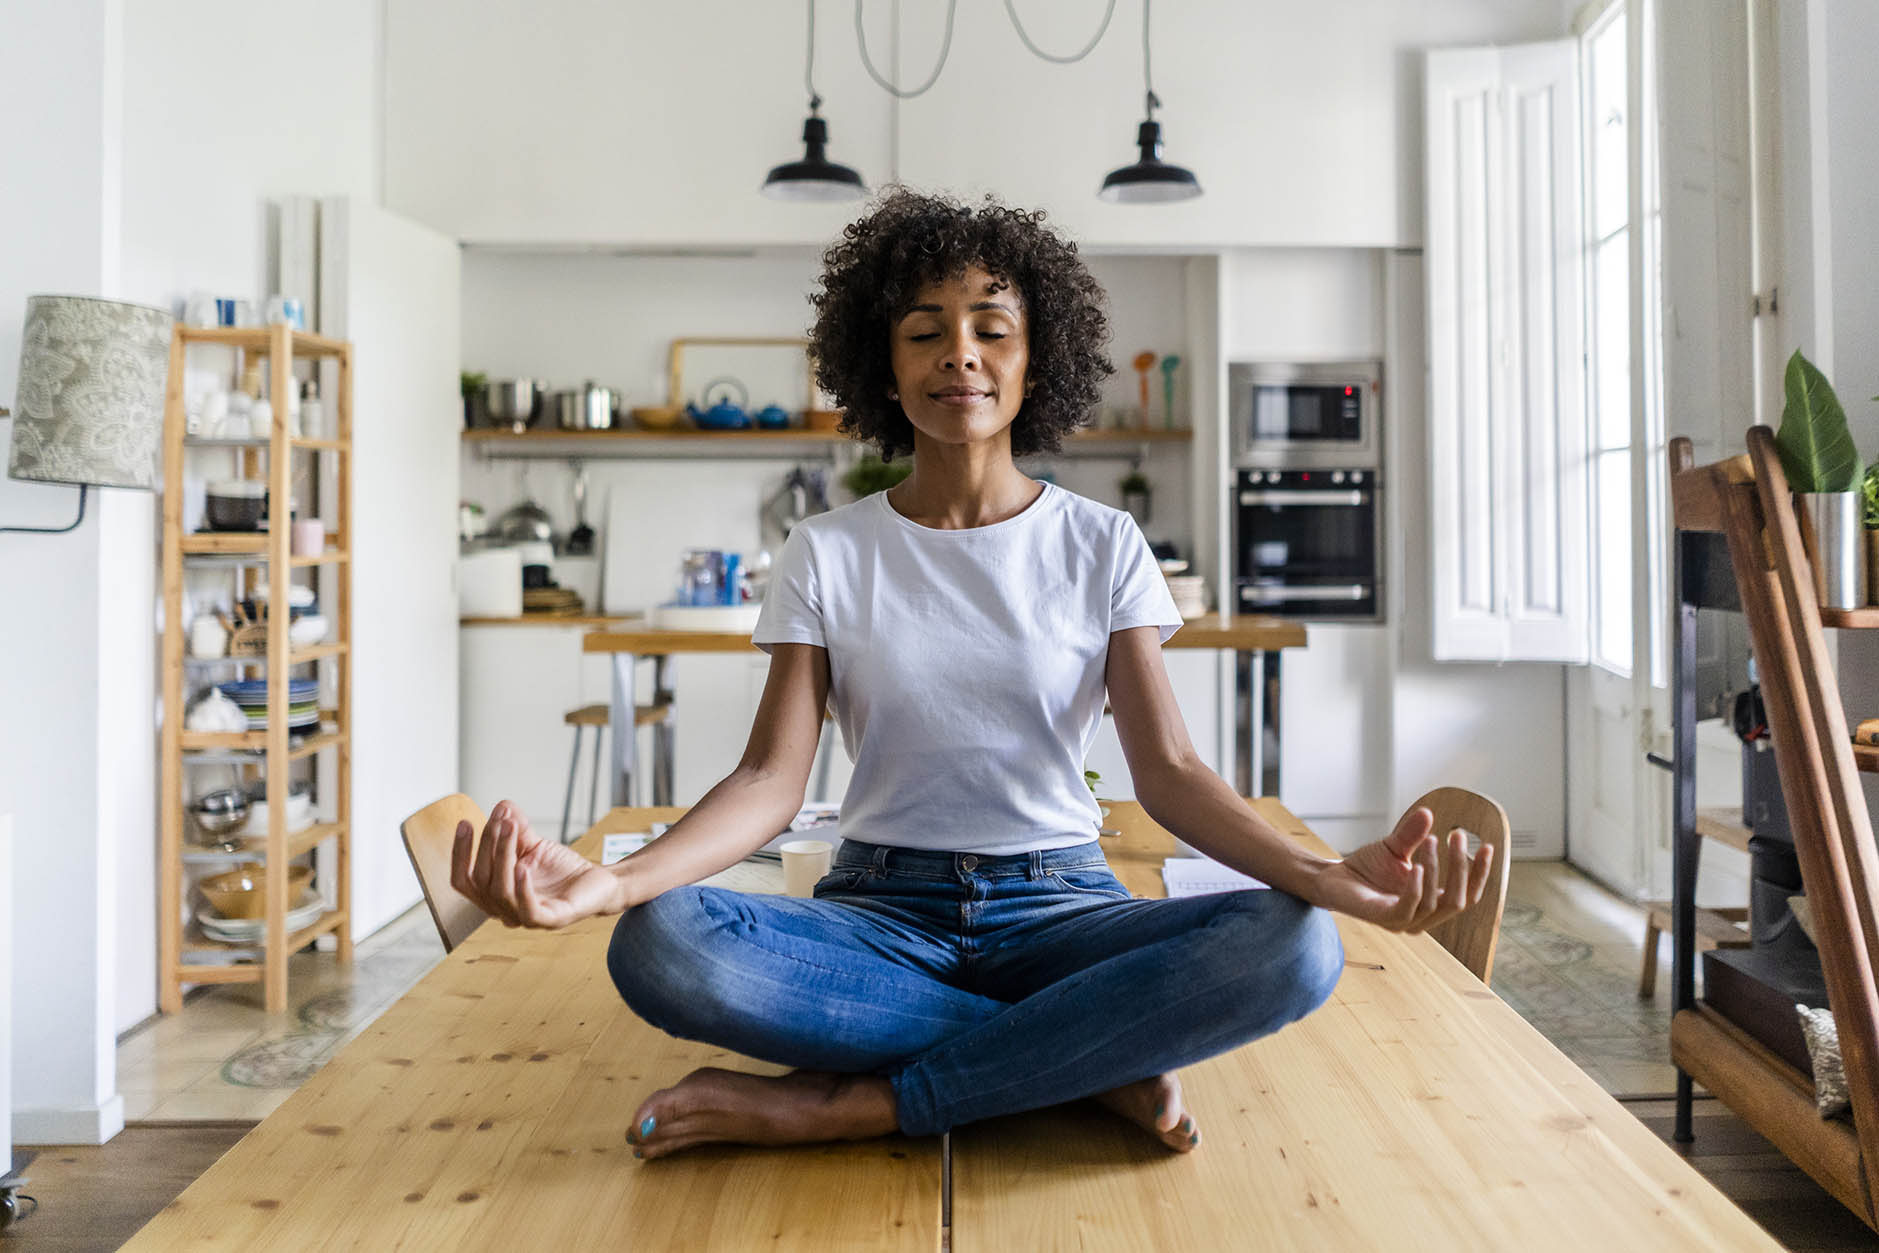 Smiling woman with closed eyes meditating on table at home